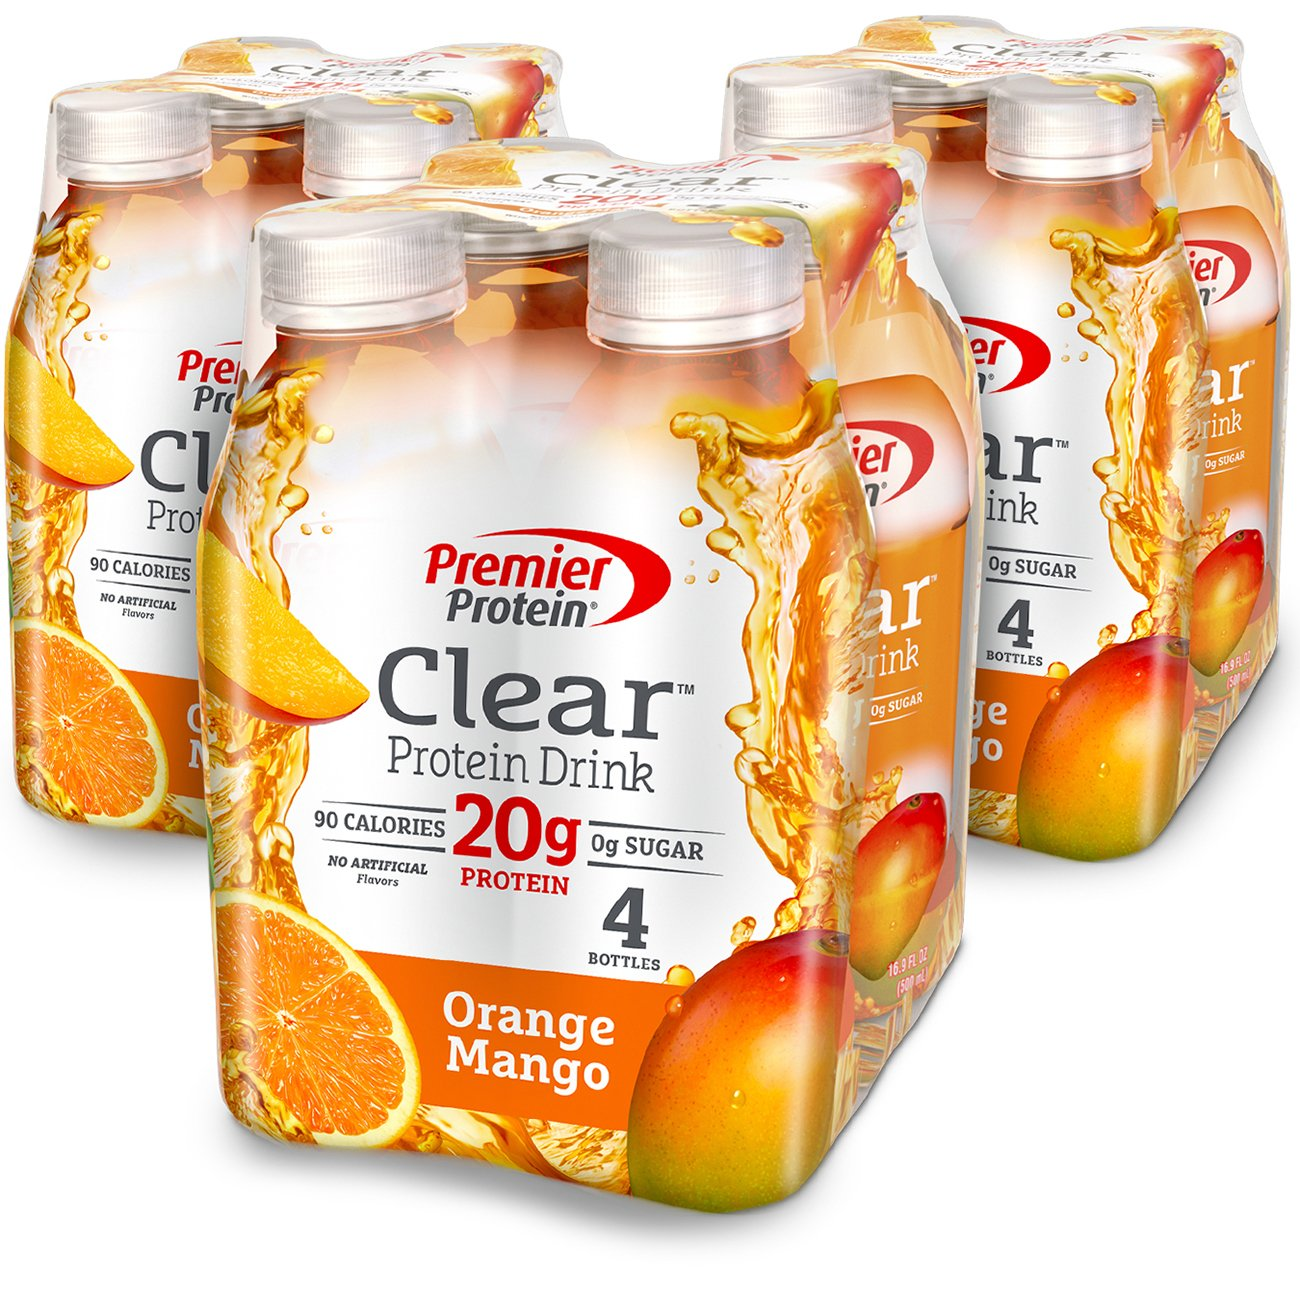 Premier Protein Clear Protein Drink Bottle, Orange Mango, 16.9 Fluid Ounce, Pack of 12 by Premier Protein